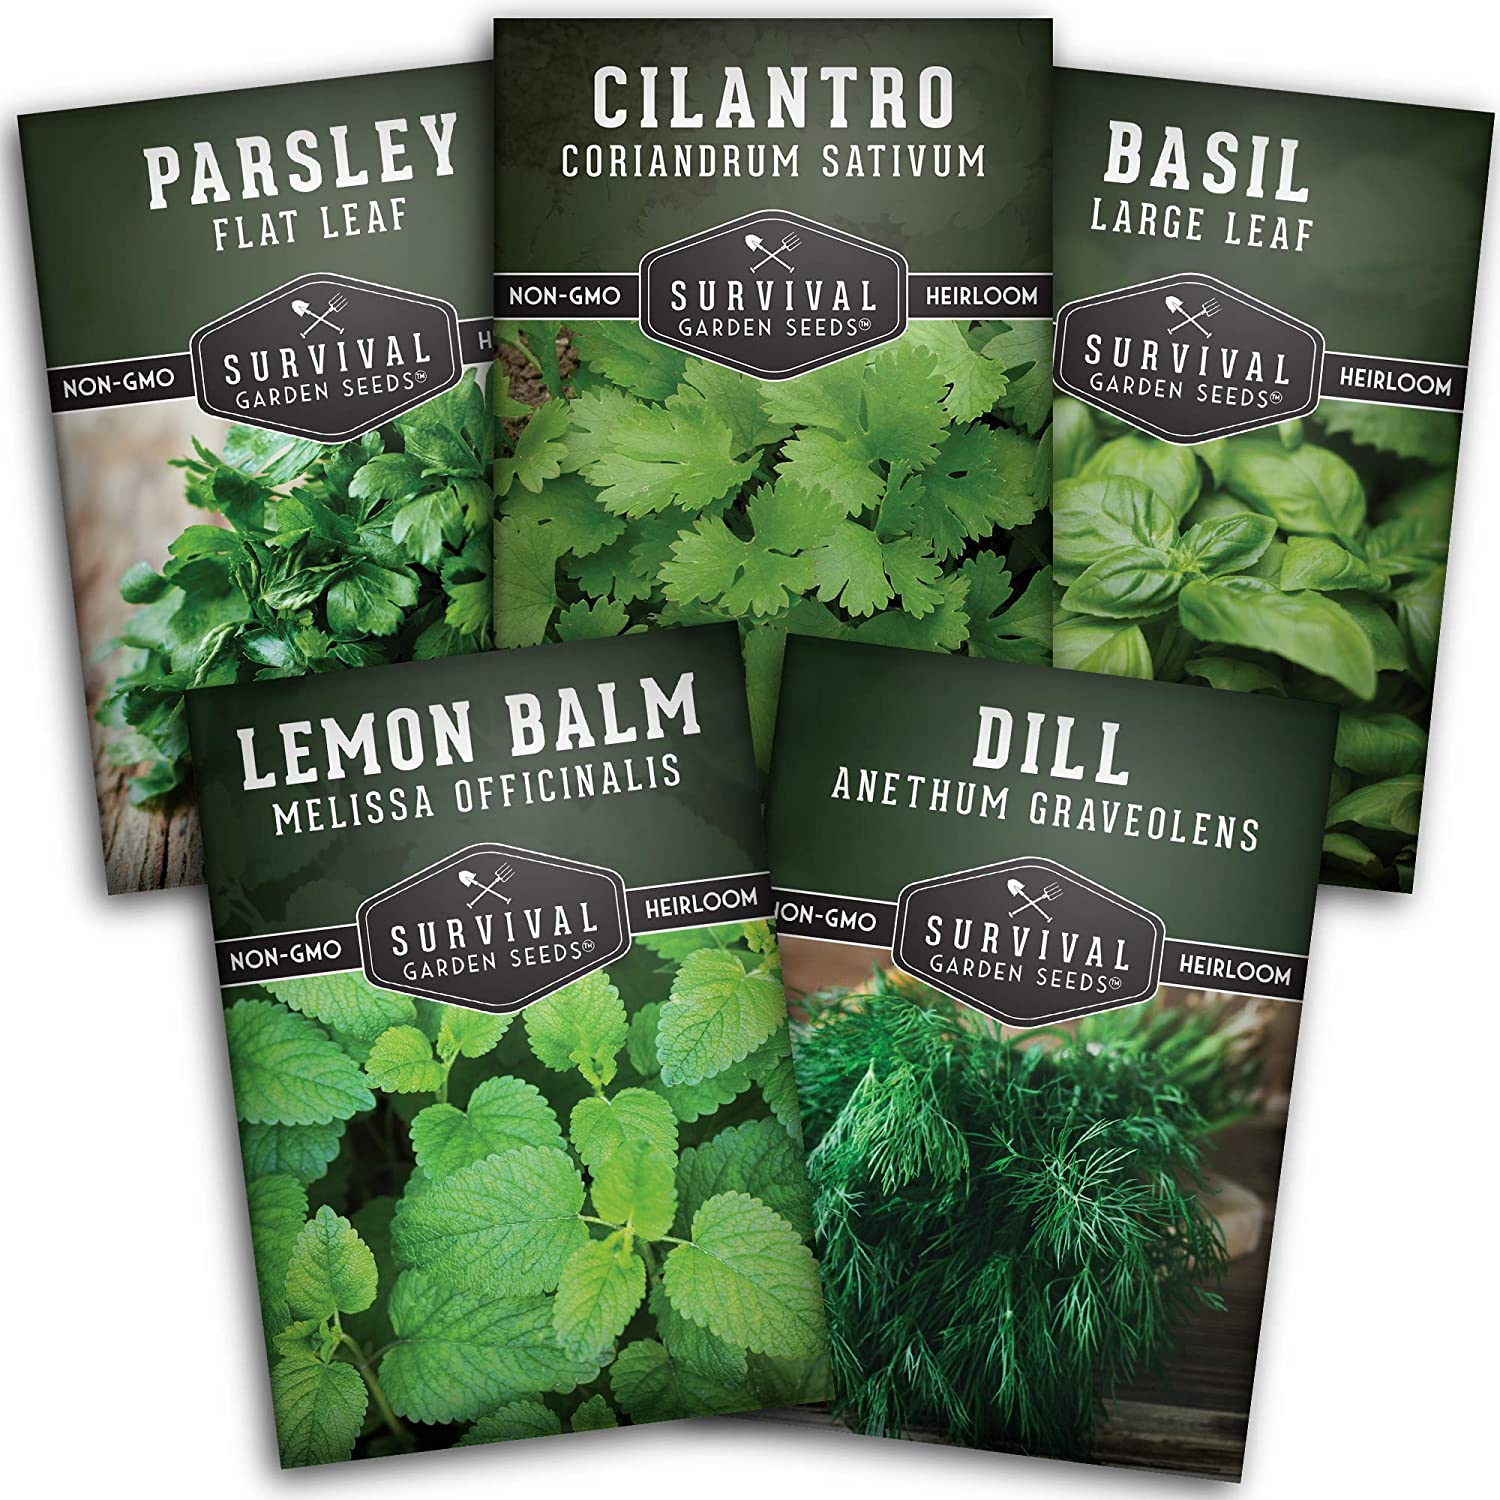 Survival Garden Seeds Herb Collection Seed Vault - Non-GMO Heirloom Survival Garden Seeds for Planting - Waterproof Packaging for Long Term Storage